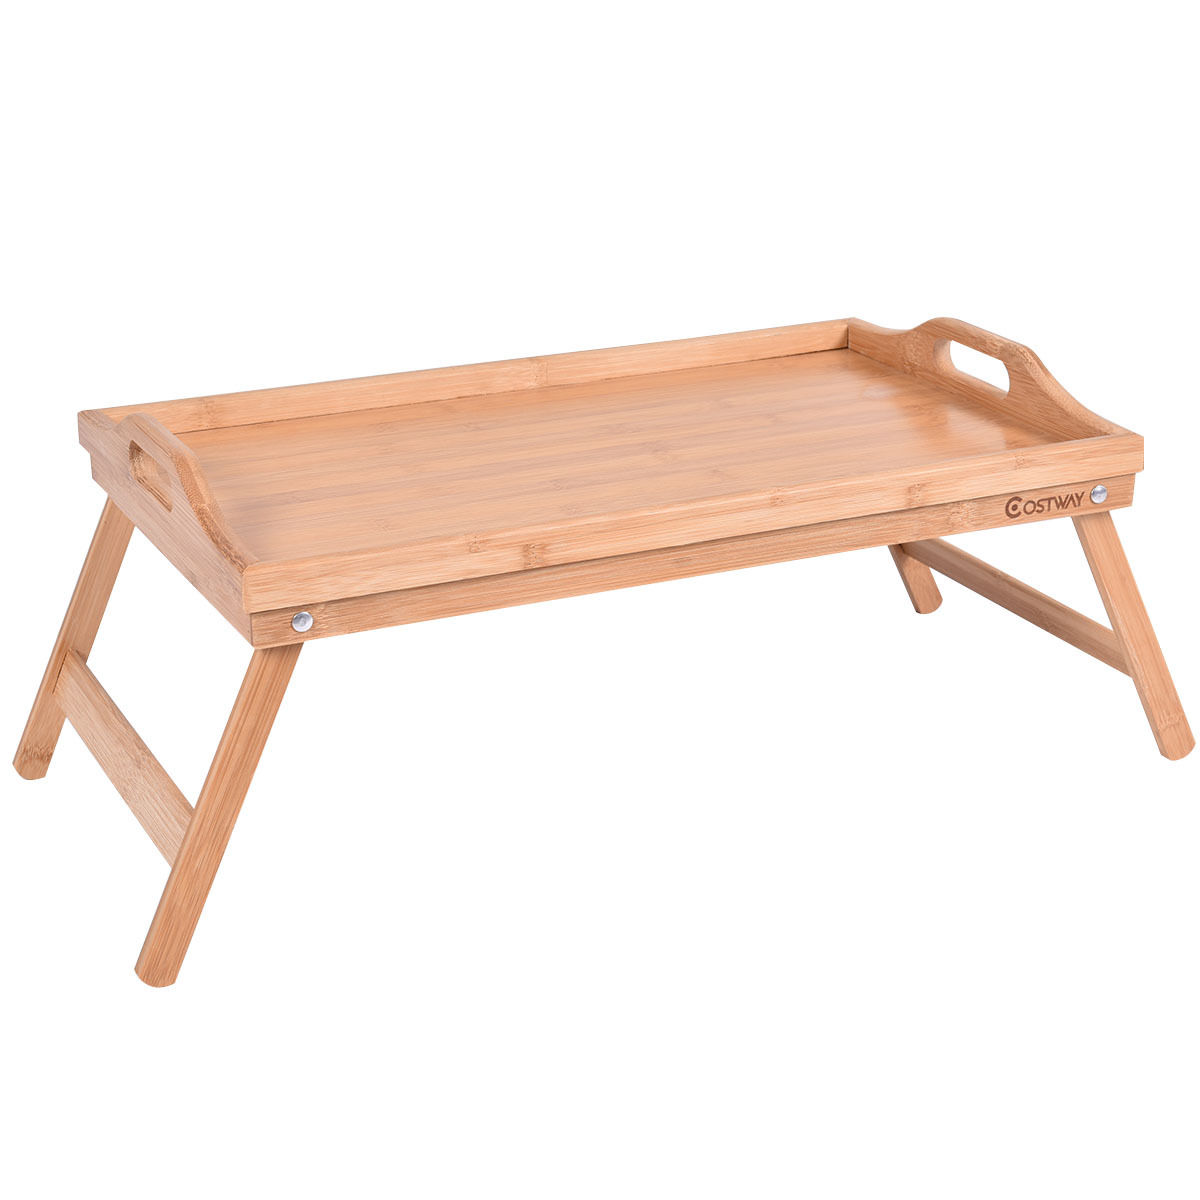 Portable Bamboo Breakfast Bed Tray w/ Handle